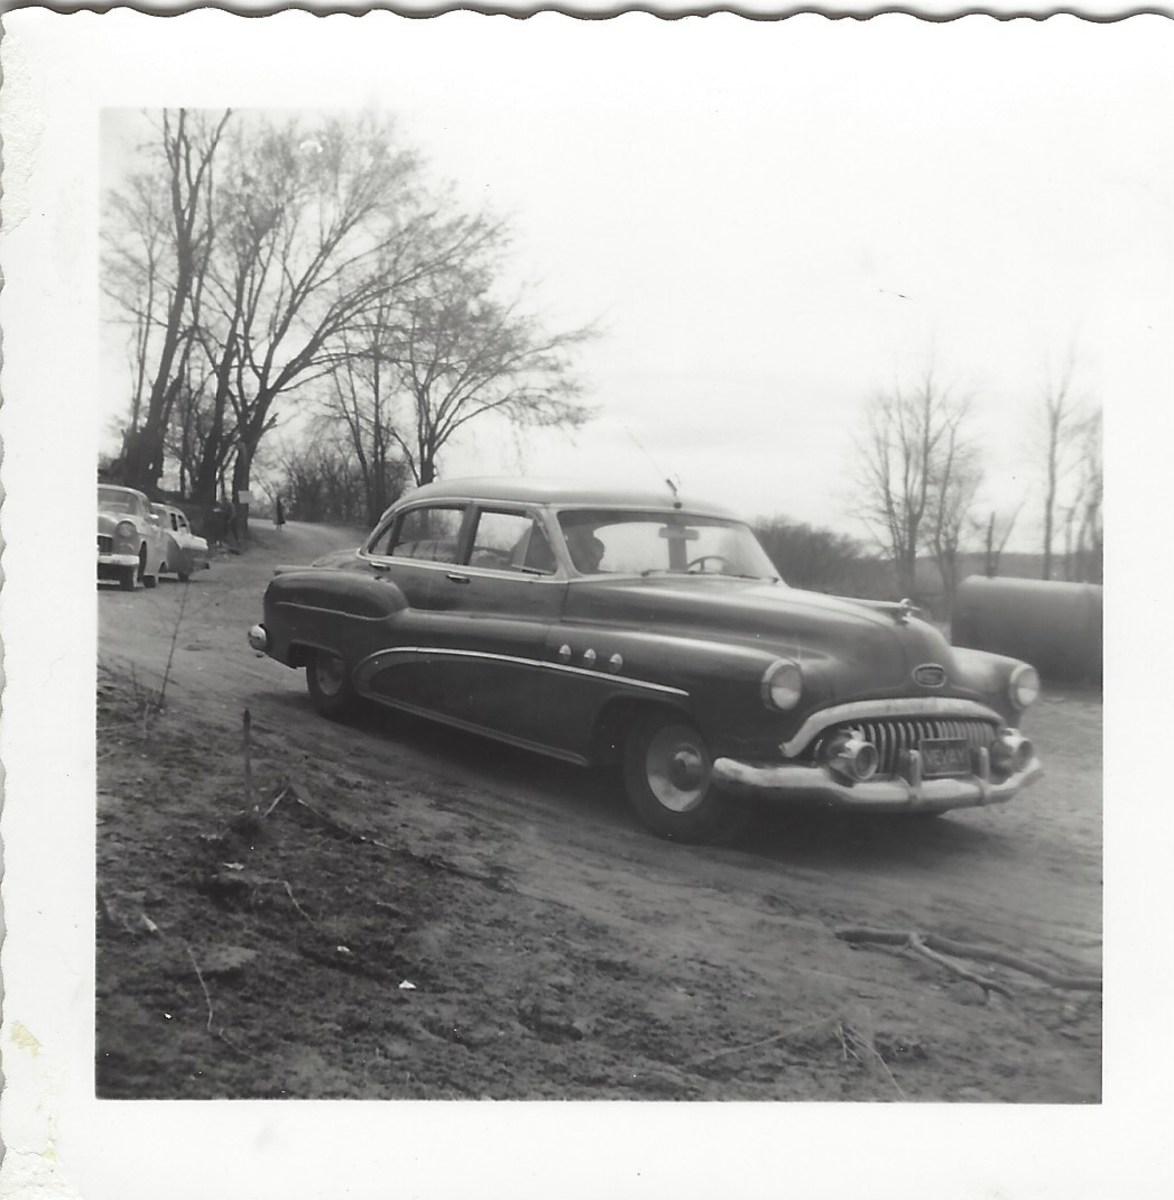 Dad's Buick